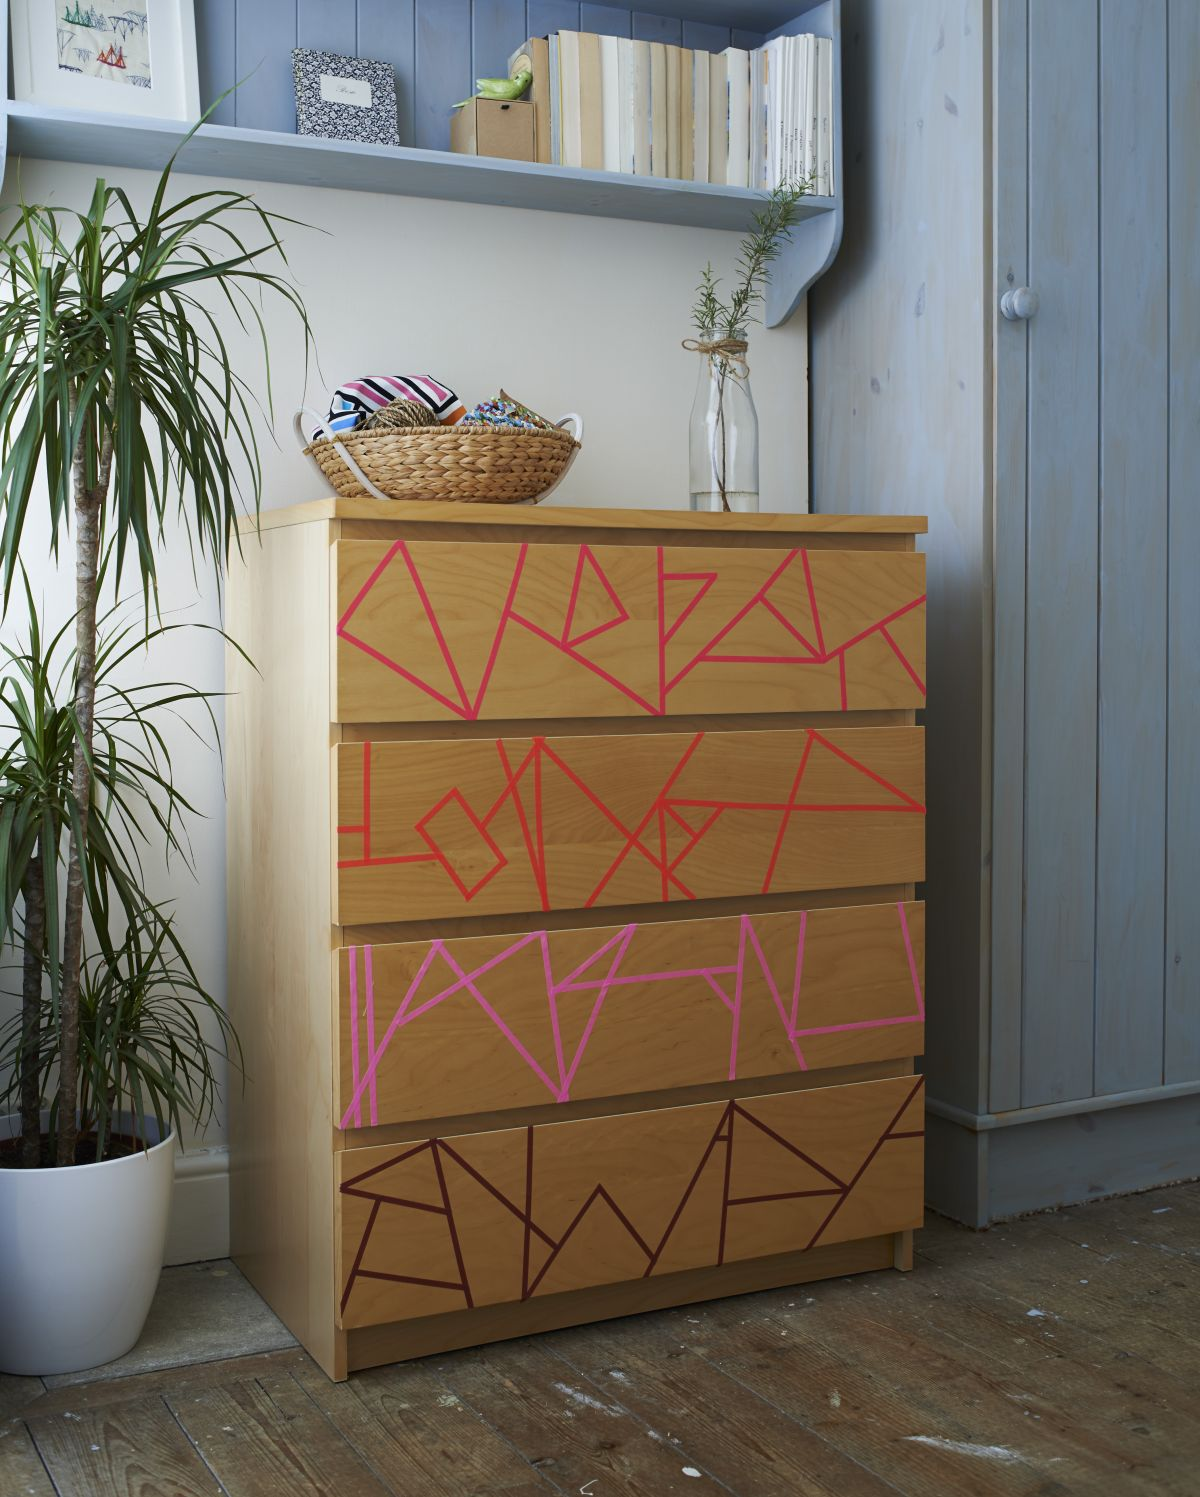 Washi tape ideas: how to upcycle furniture with tape